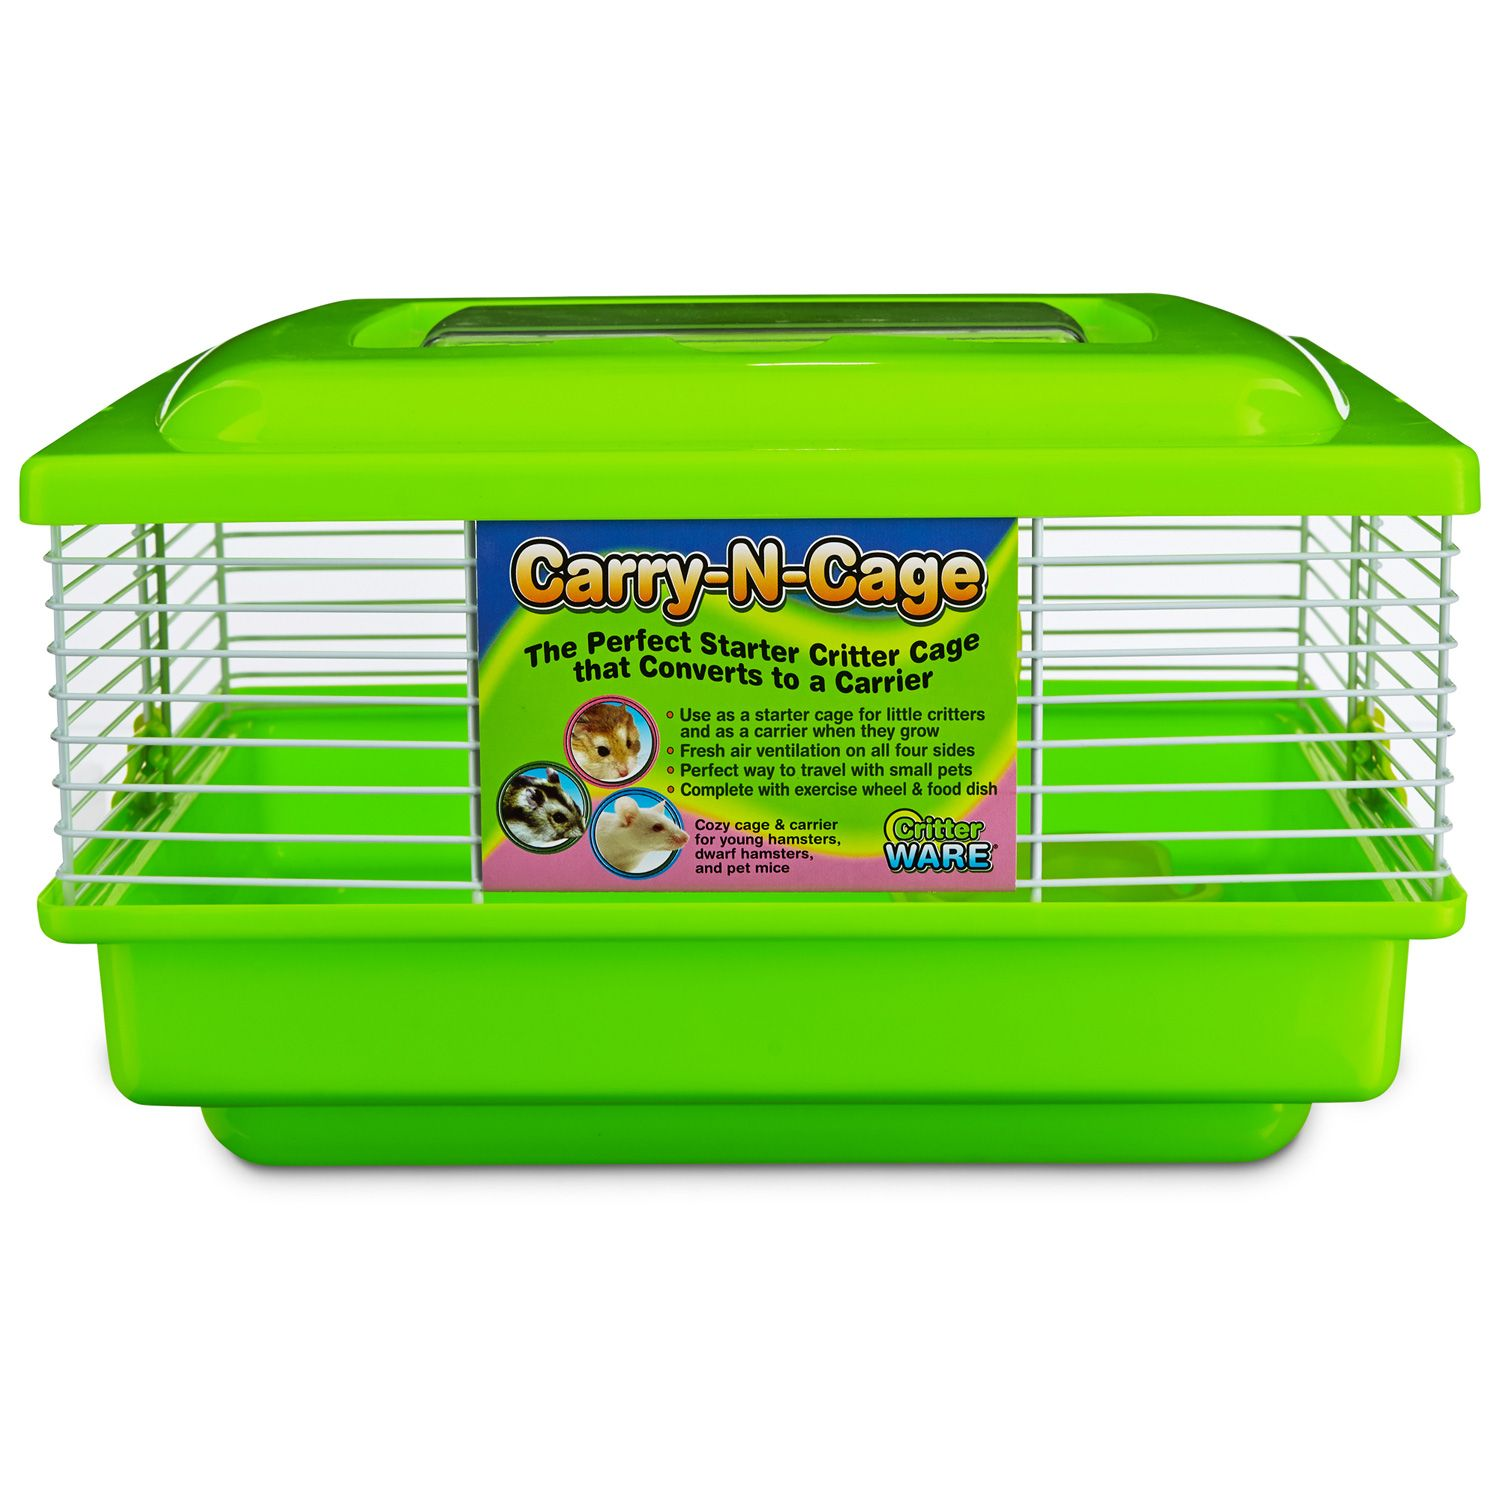 WARE CarryNCage Small Animal Habitat Small pets, Small